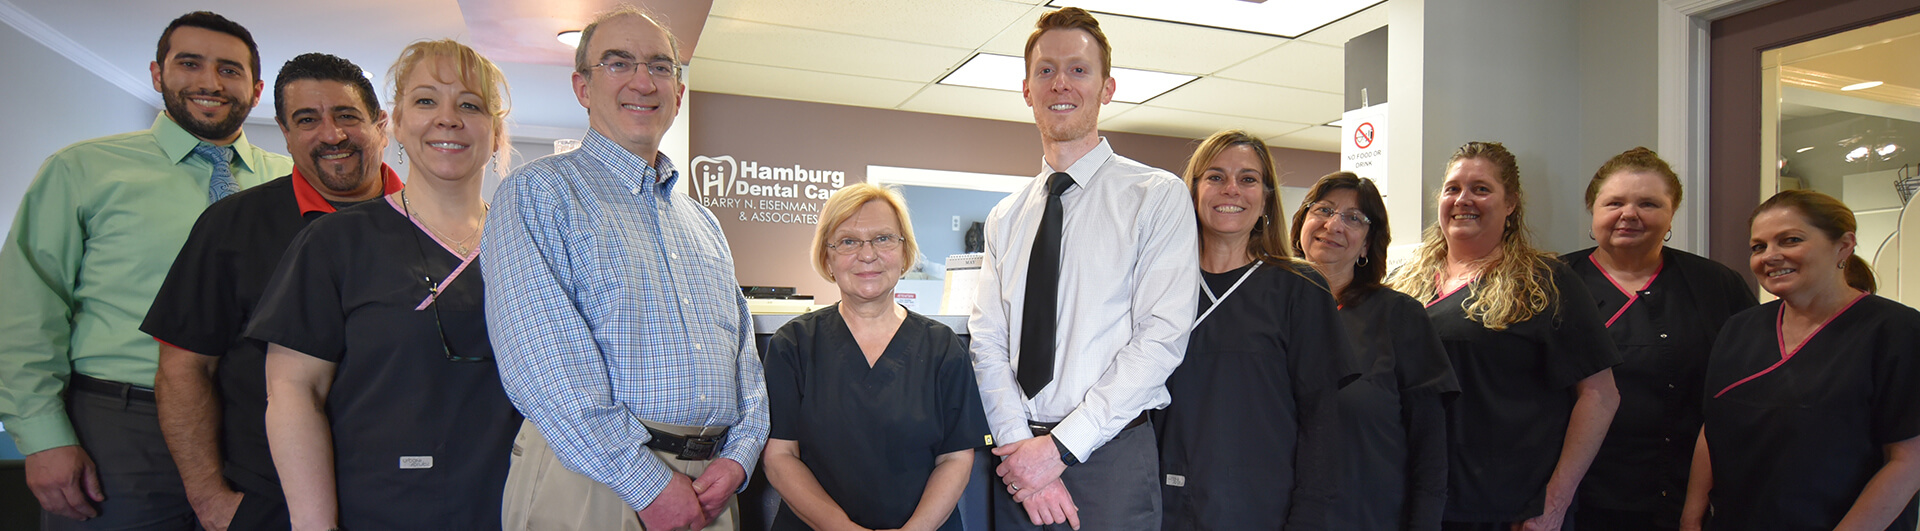 Hamburg Dental Care Team Photo